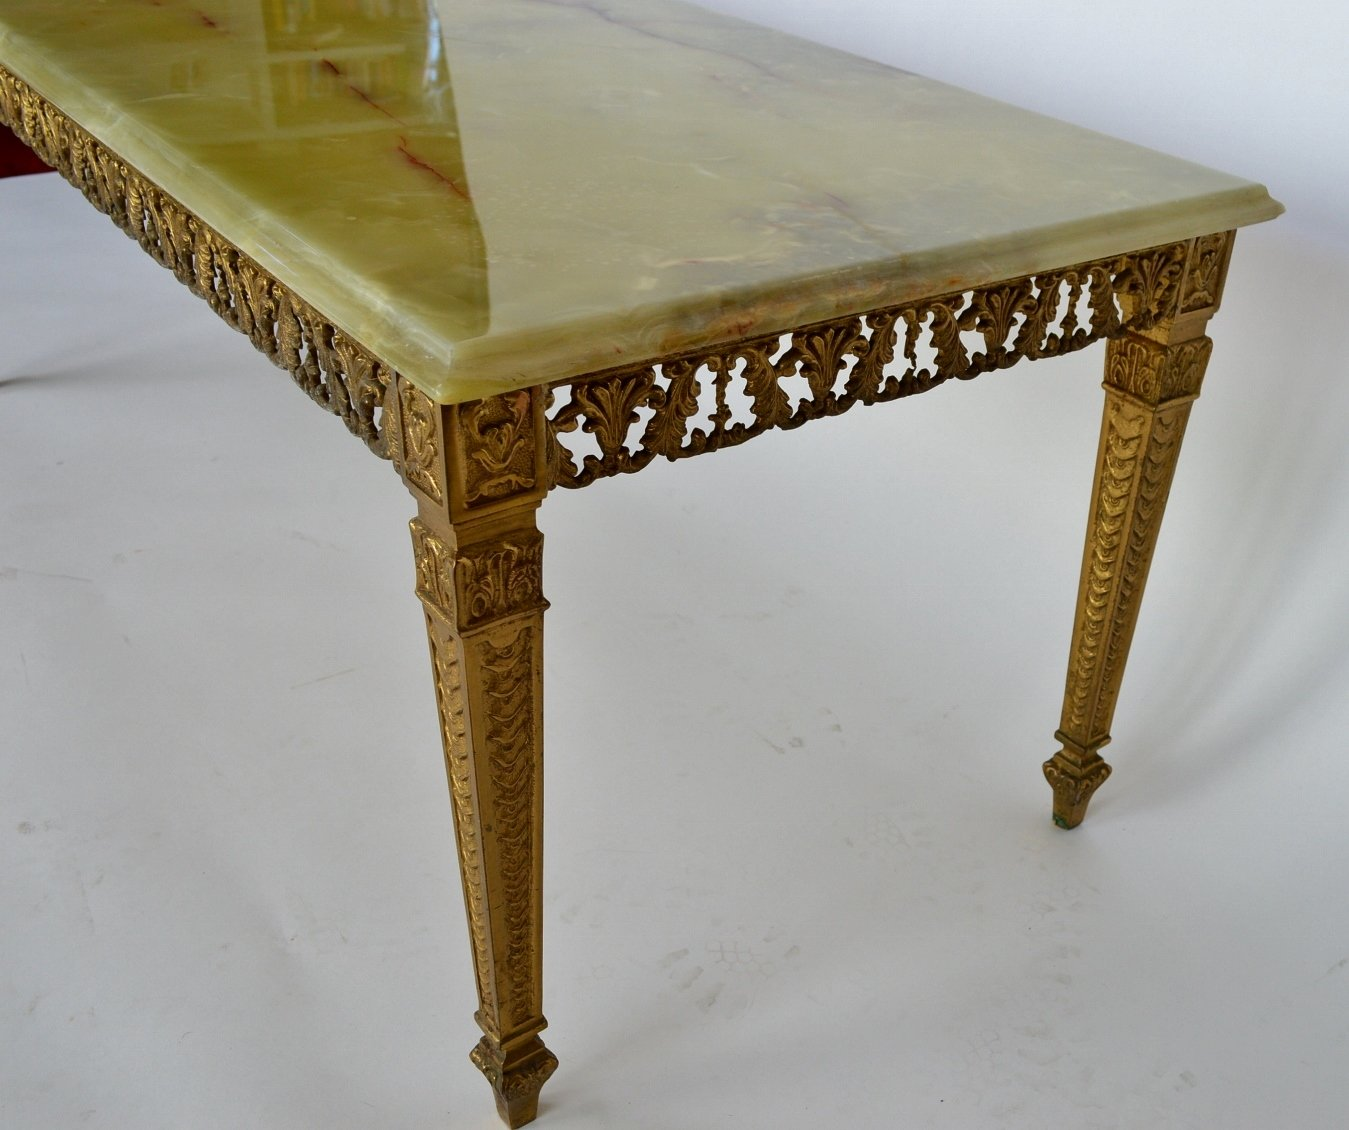 Marble Coffee Table For Sale Singapore: Green Onyx Marble & Brass Coffee Table, 1970s For Sale At